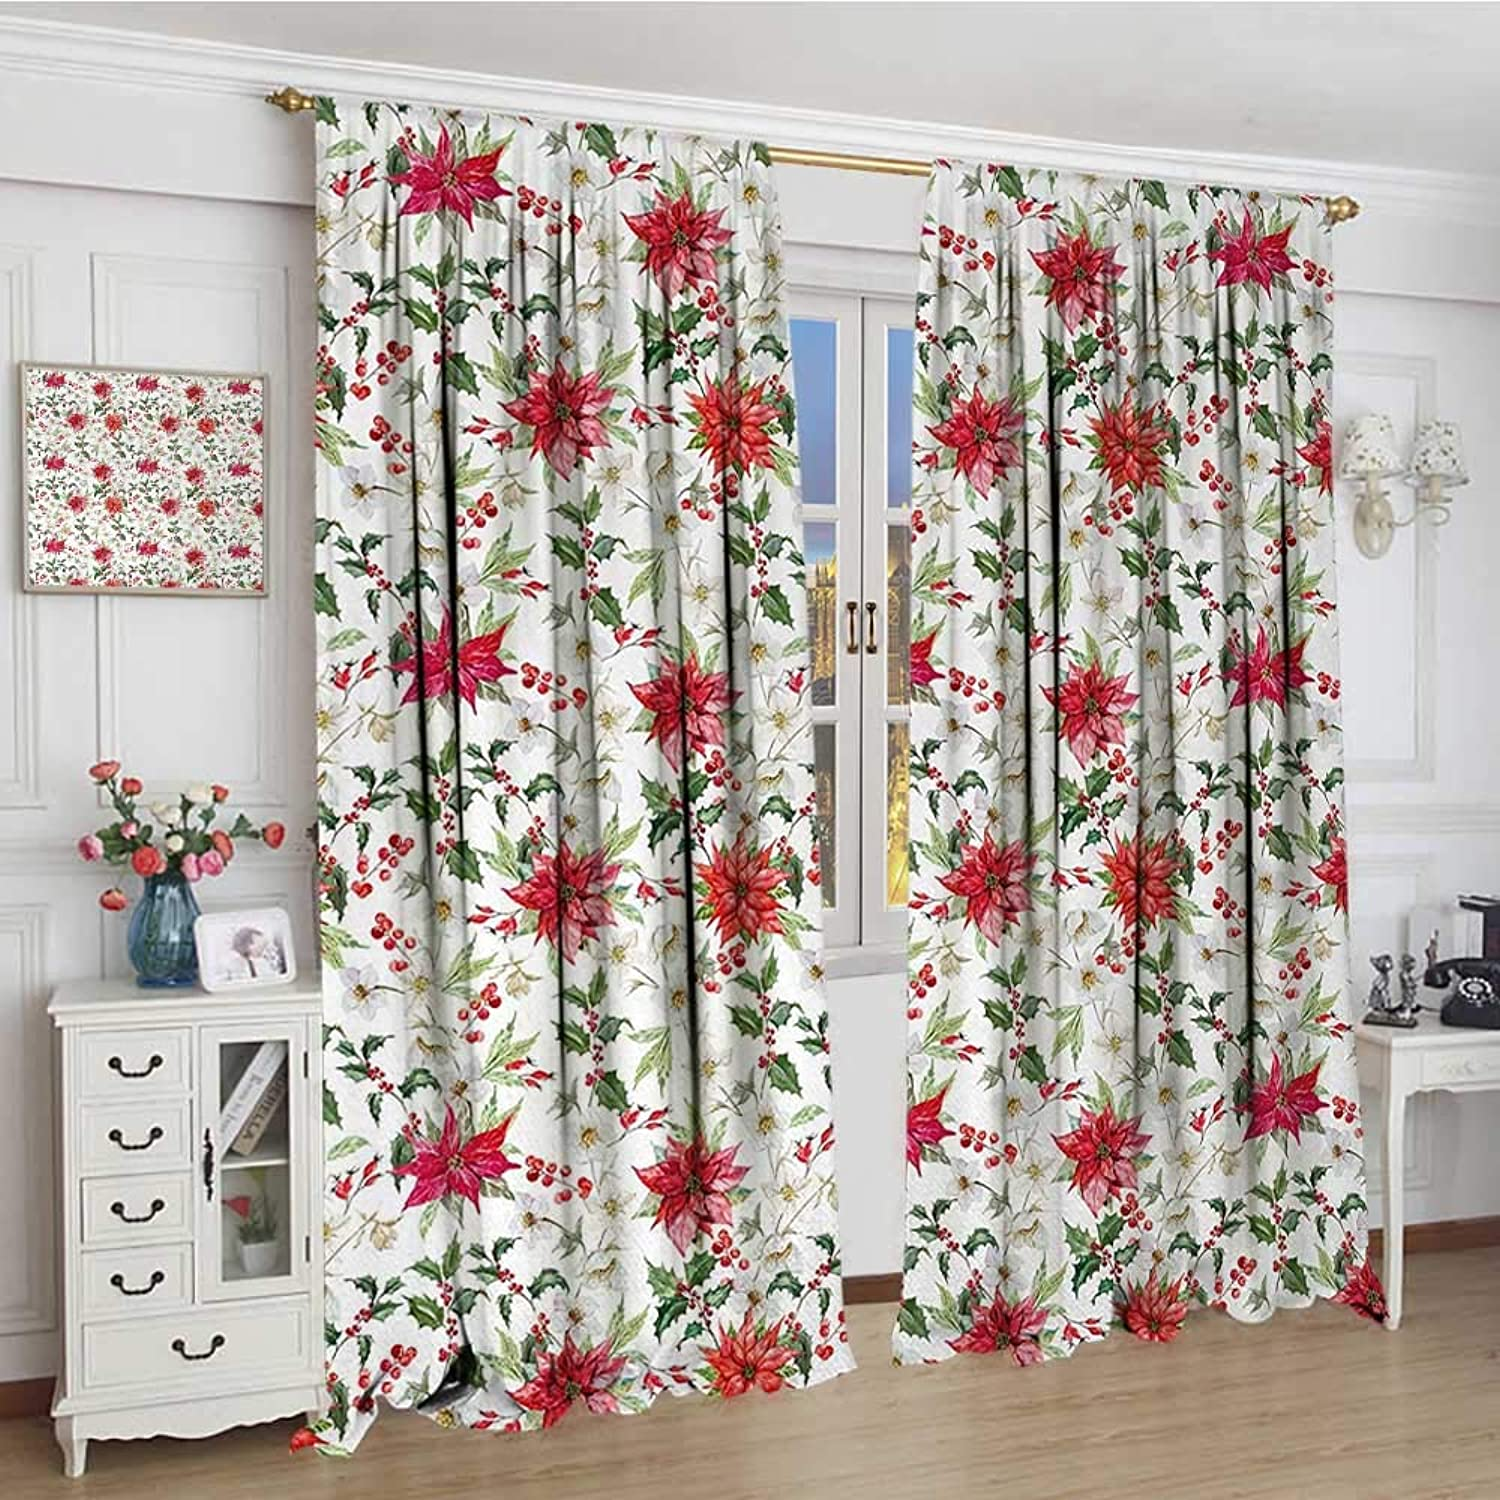 Smallbeefly Watercolor Thermal Insulating Blackout Curtain Fresh Poinsettia Flowers and Rowan Berry Branches Christmas Garden Decorative Curtains for Living Room 96 x96  Vermilion Green Magenta